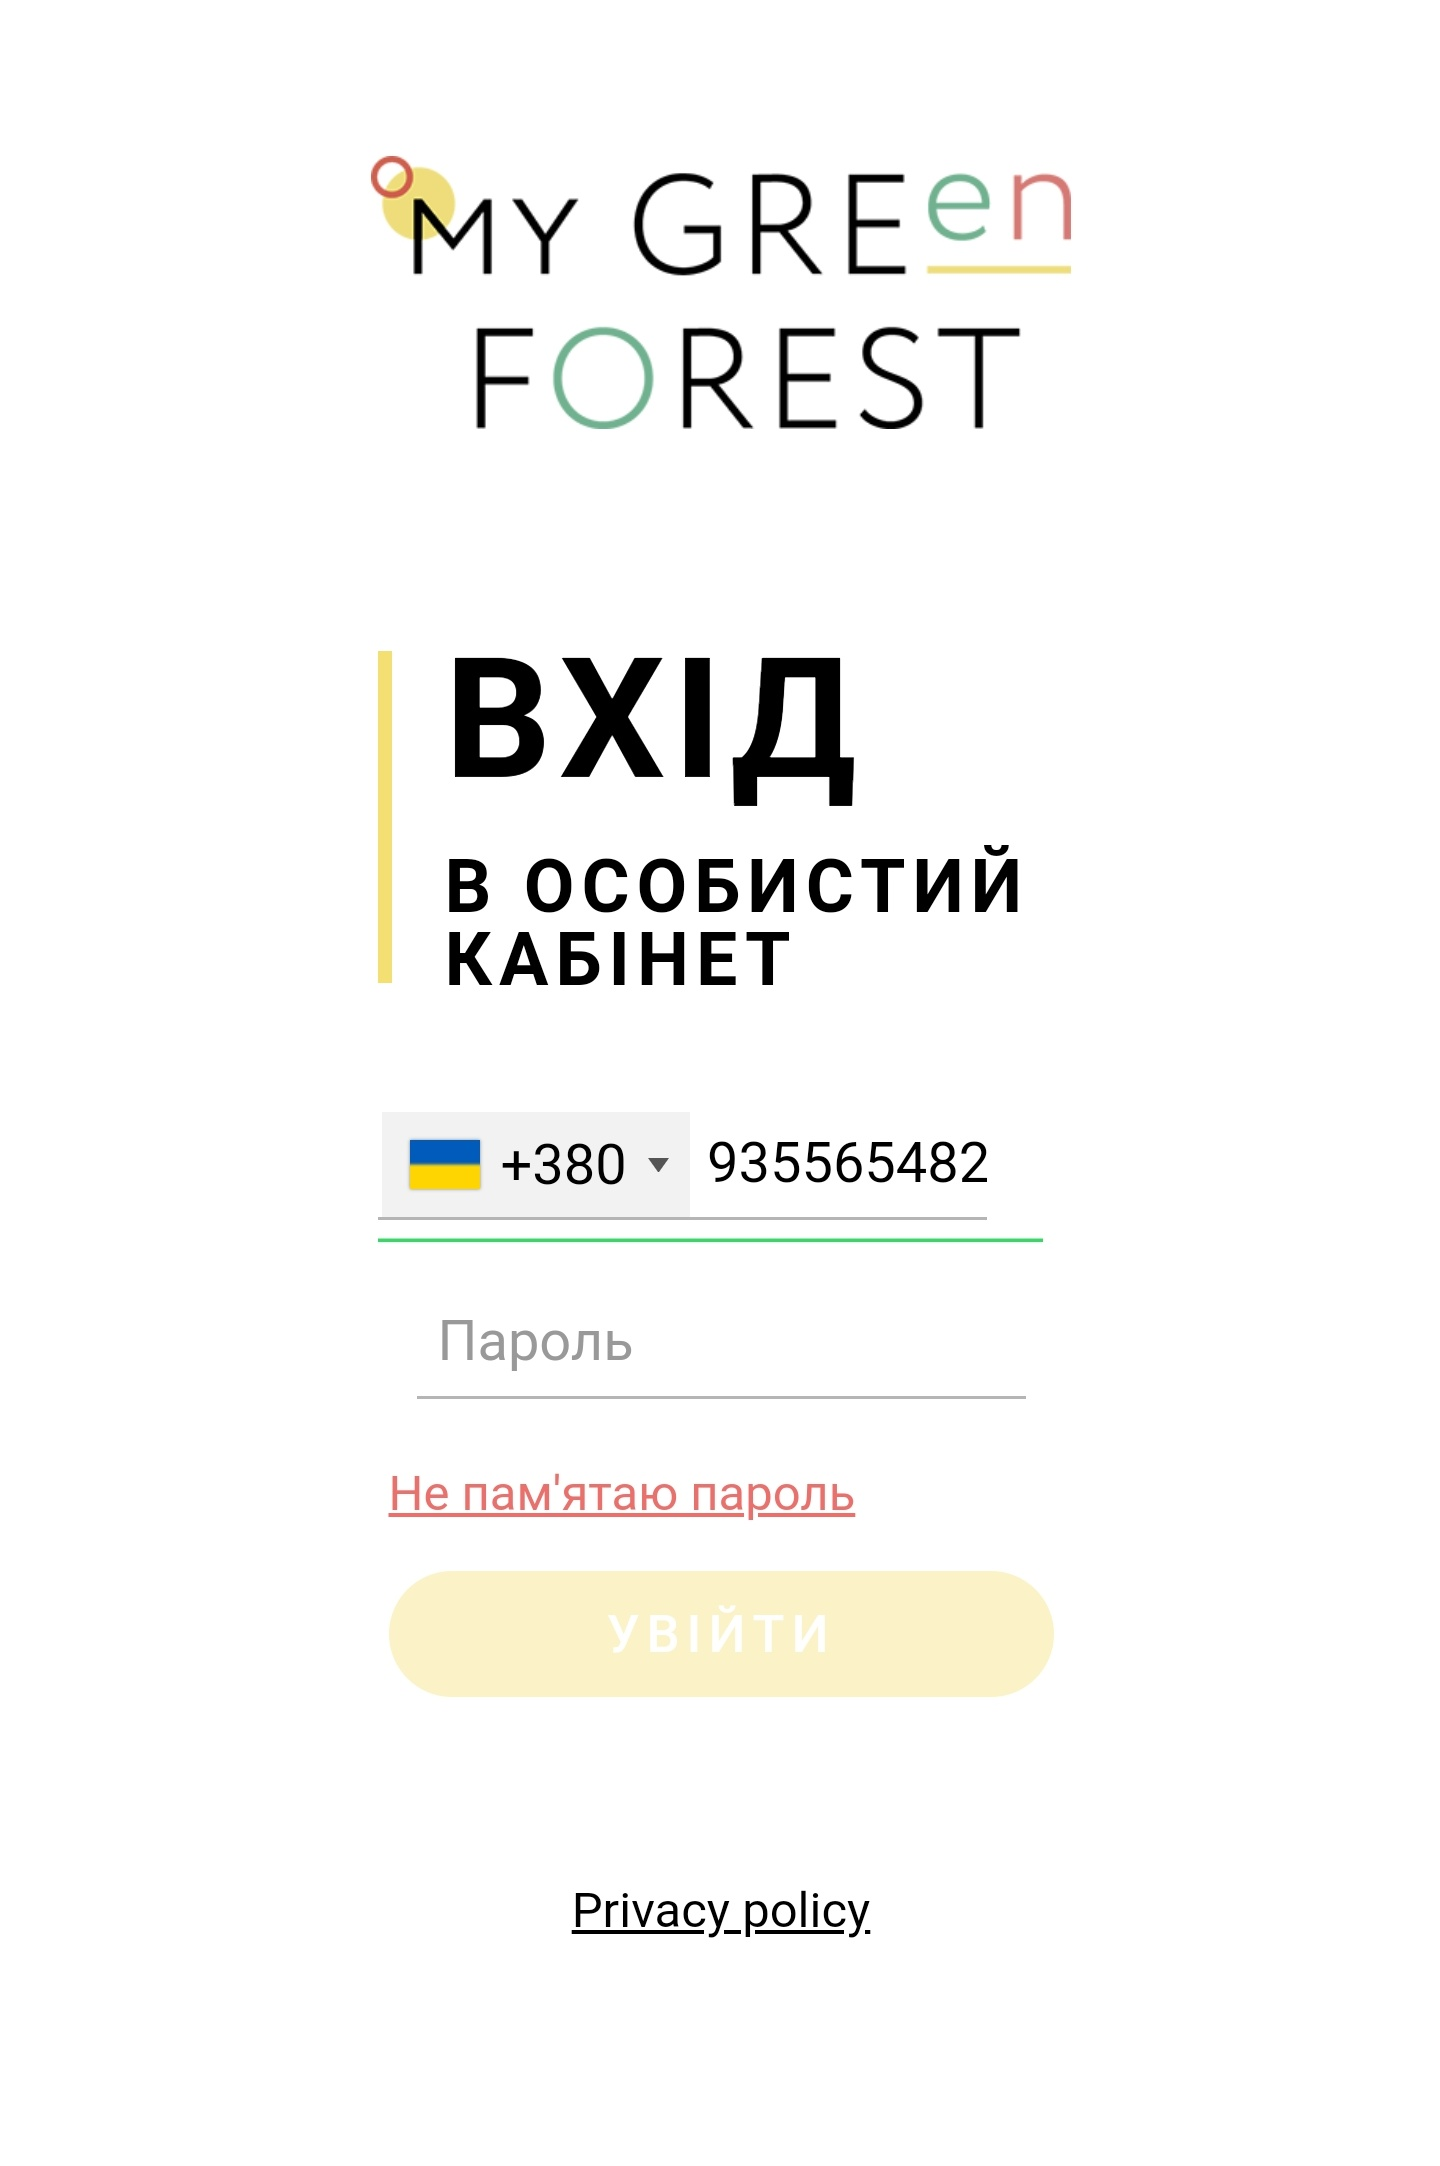 Вход в личный кабинет My Green Forest